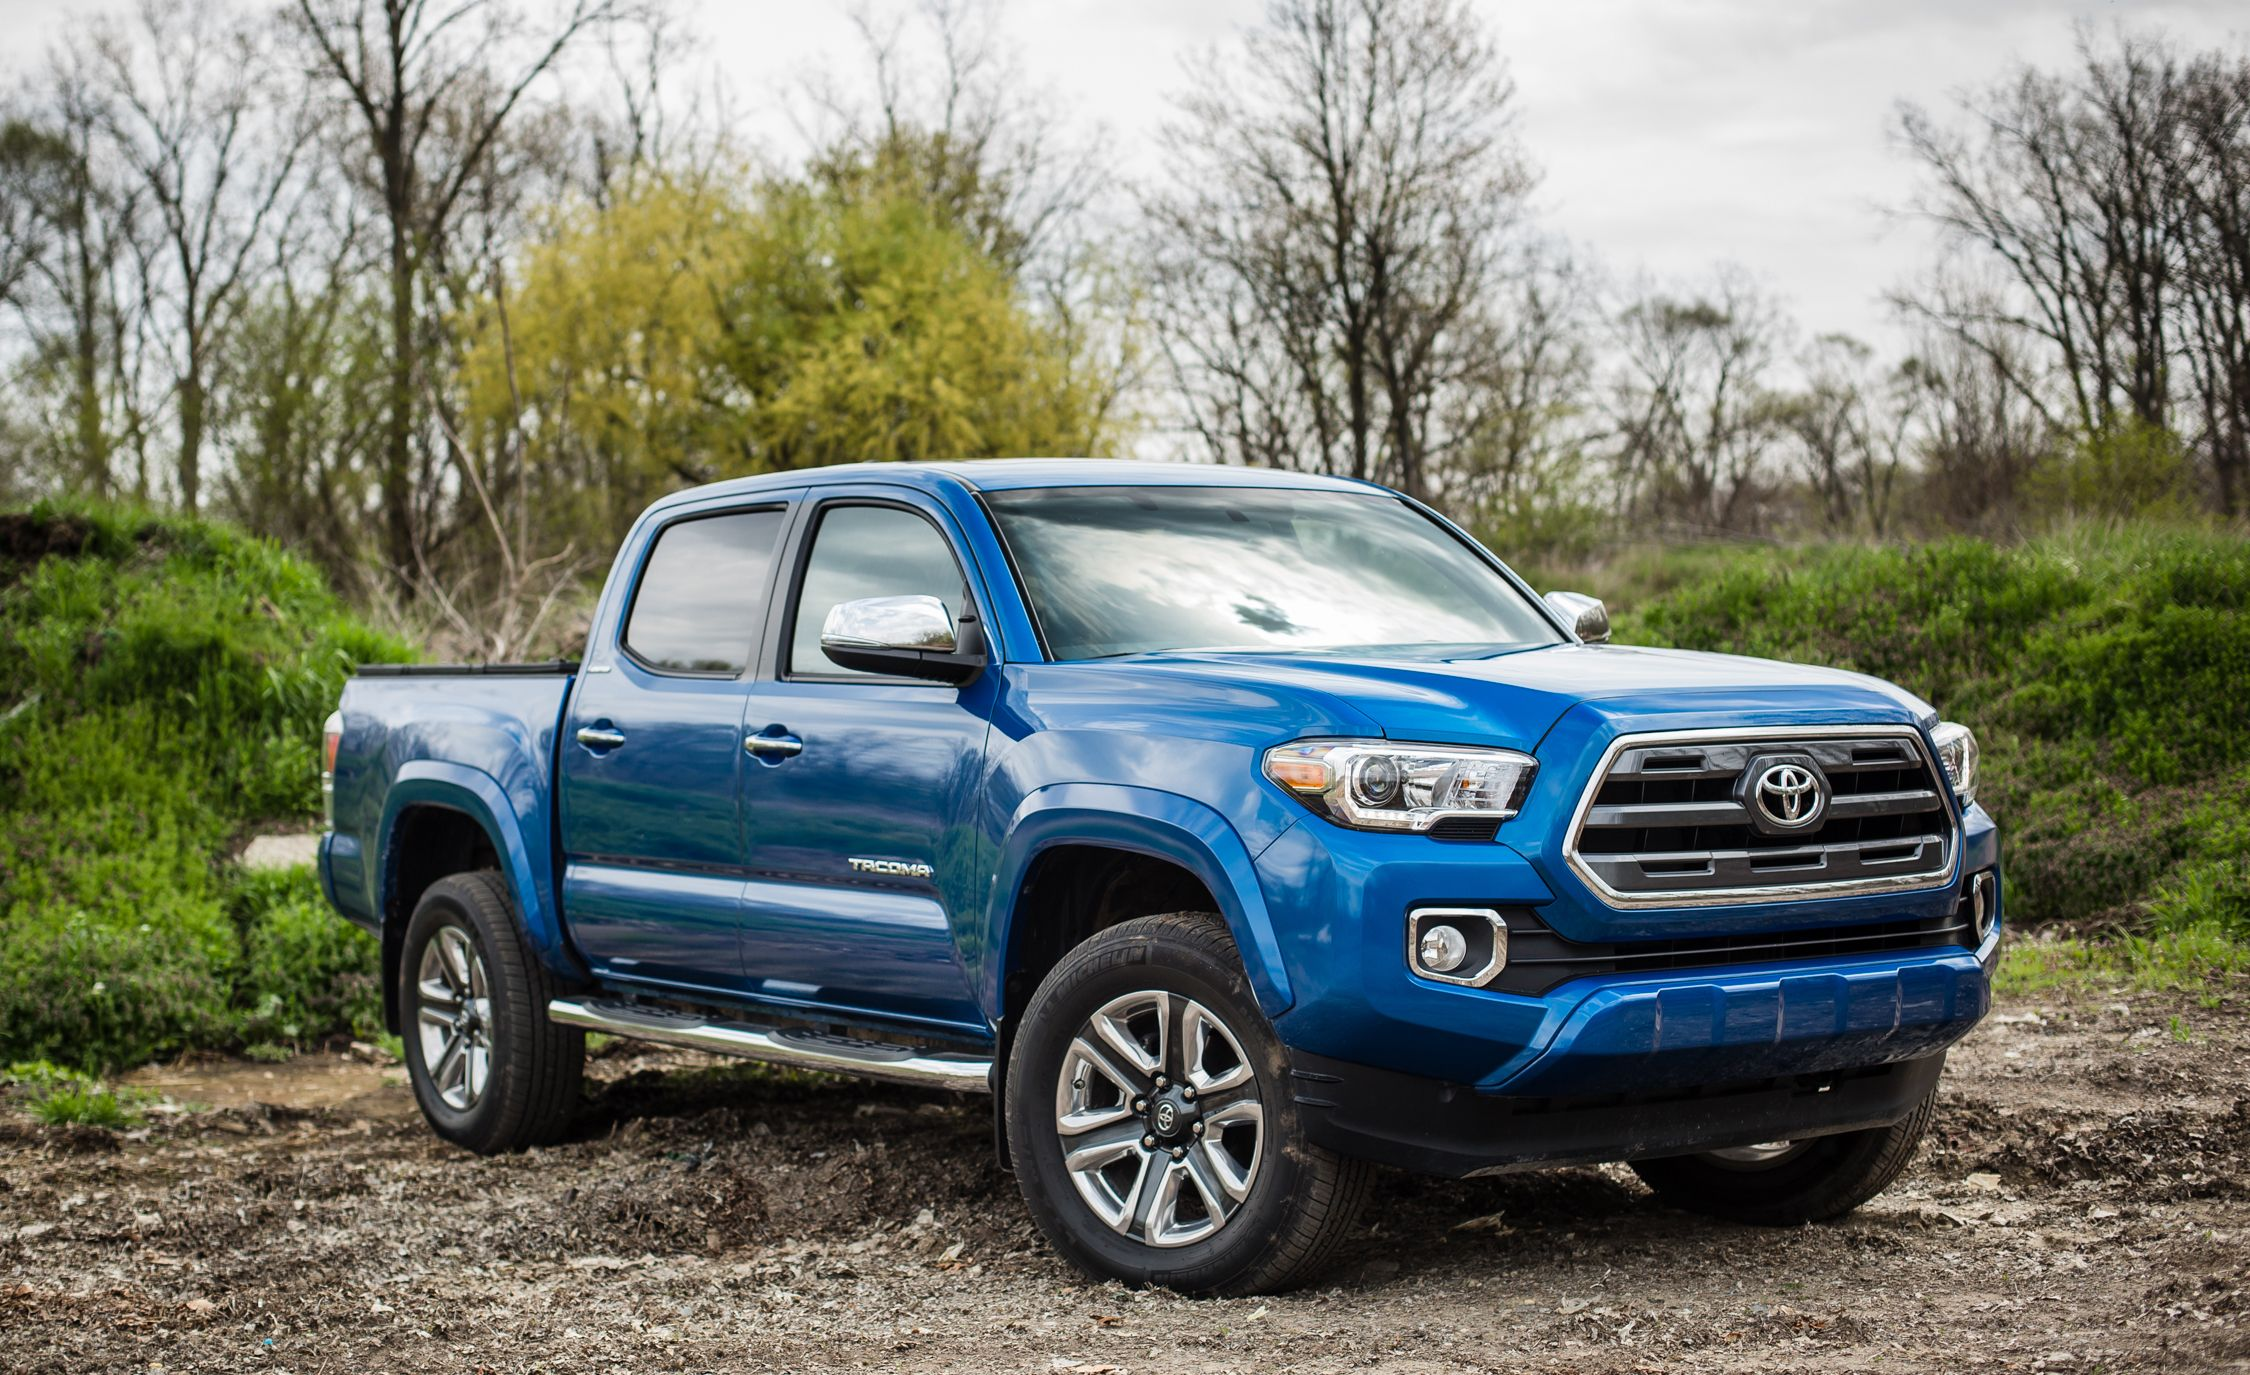 2018 Toyota Tacoma | Safety And Driver Assistance Review | Car And Driver